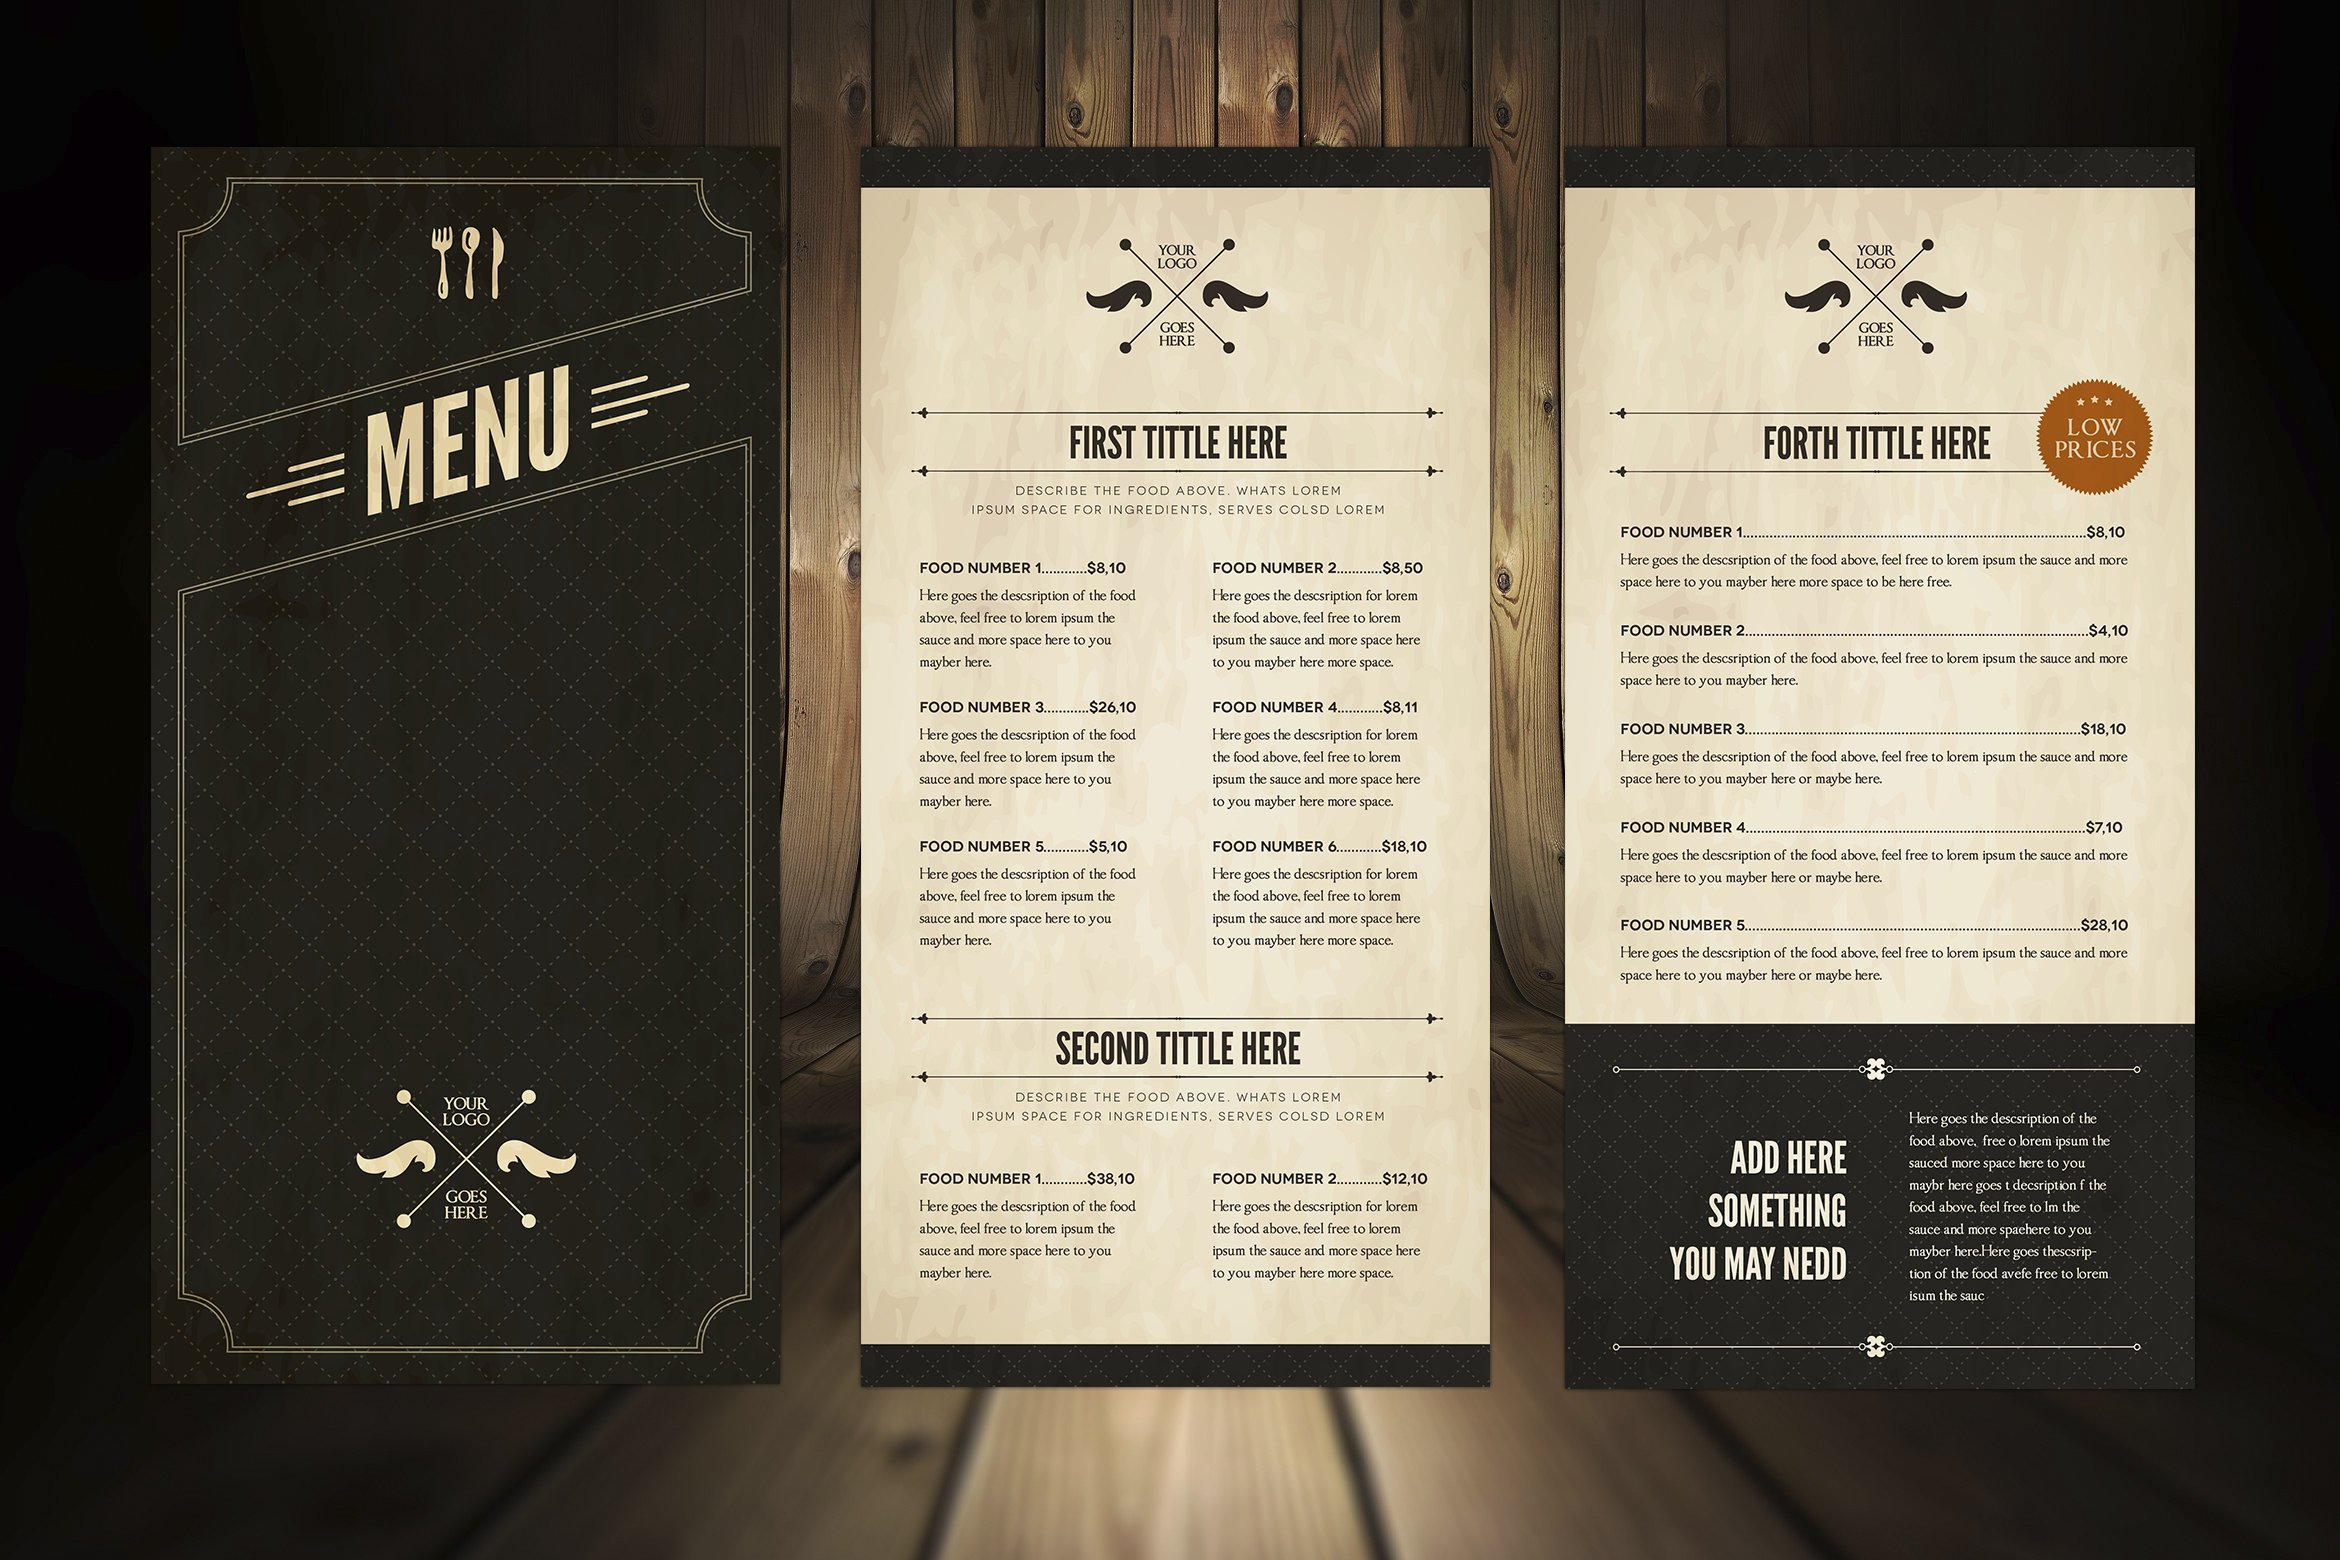 Creative Restaurant Menu Ideas | World of Reference